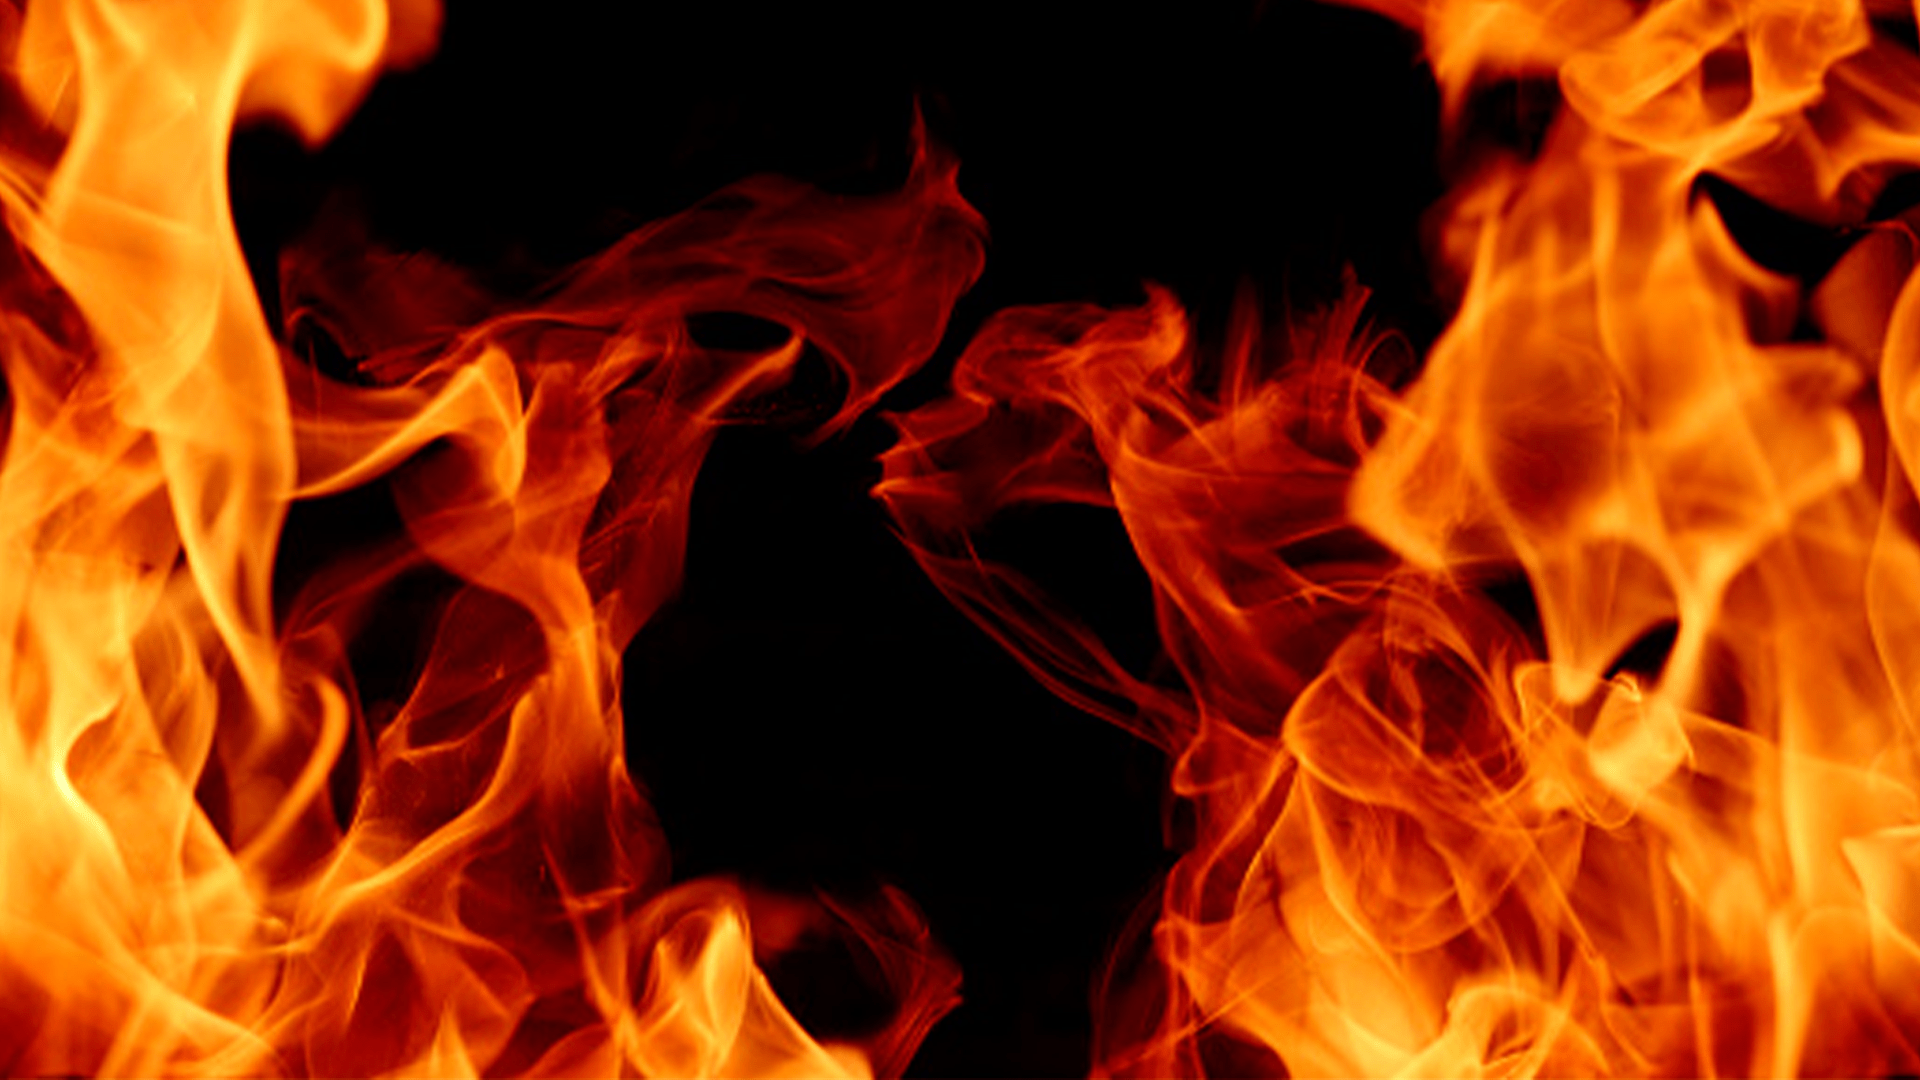 Fire20House20Structure20Blaze_1558360745926.png_88319359_ver1.0